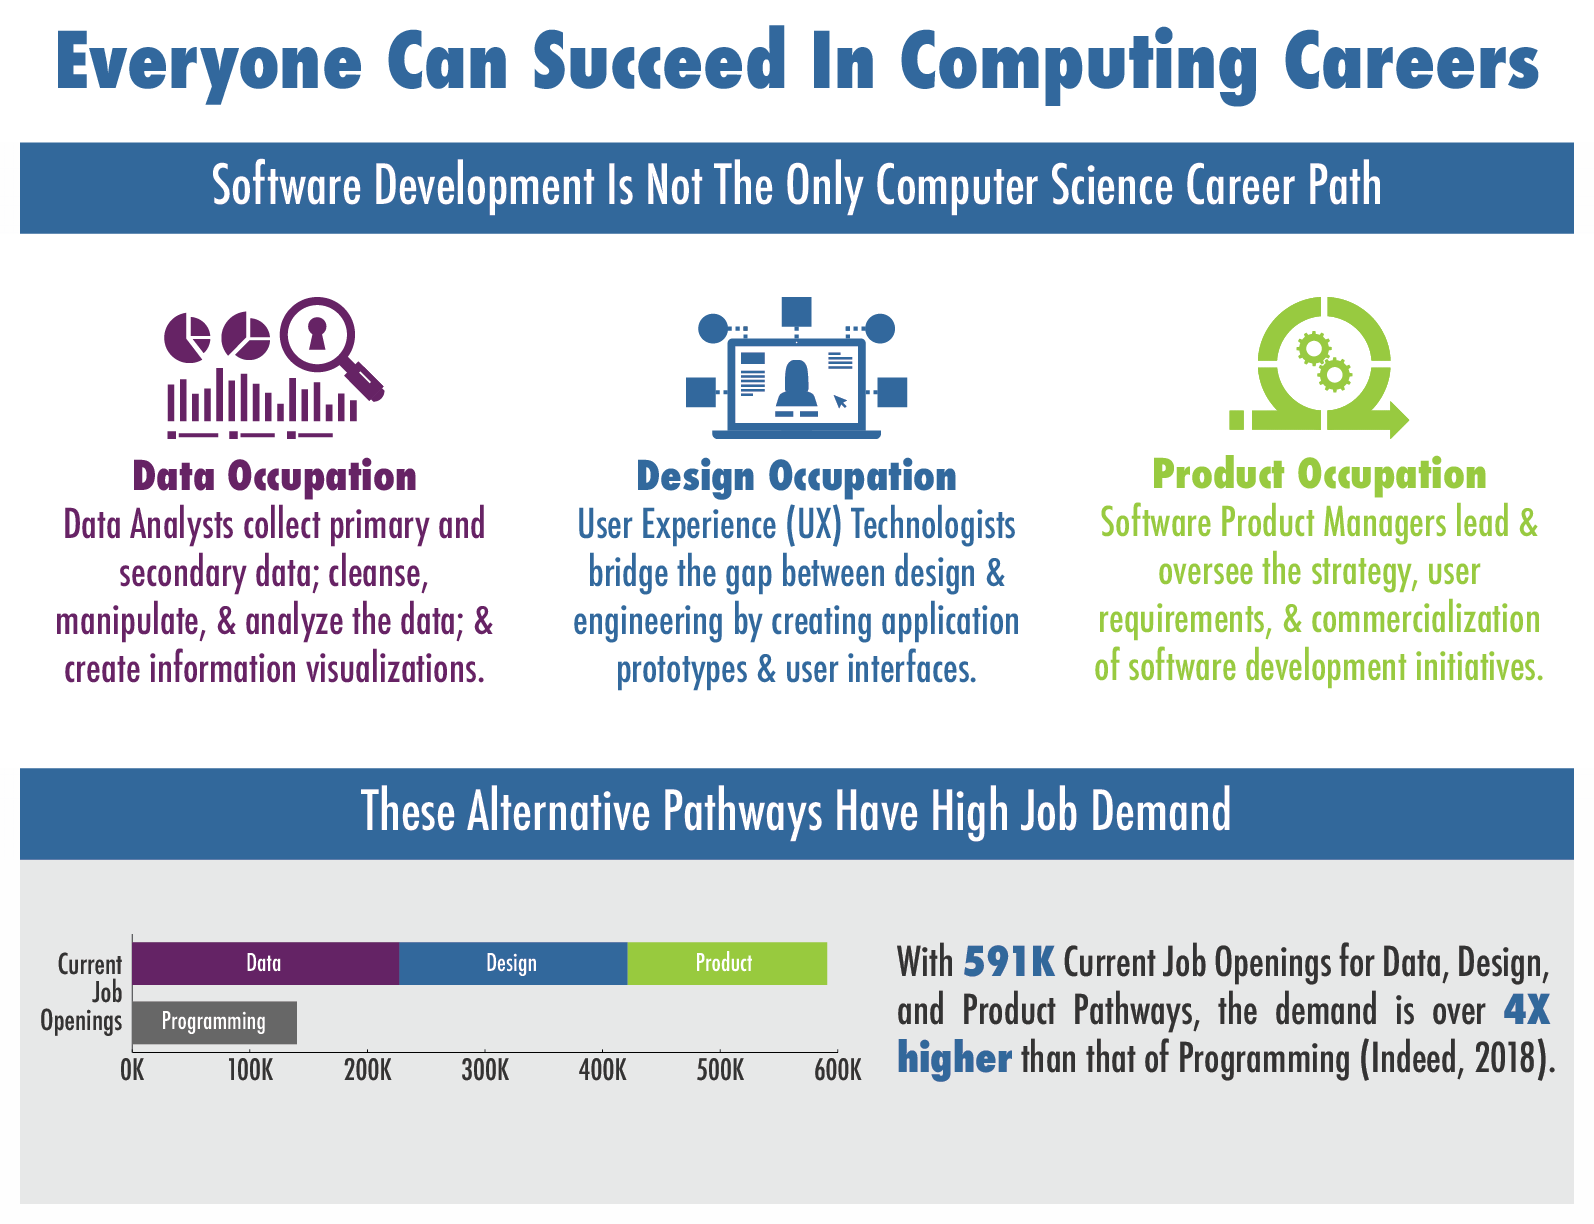 Altering-the-Vision-of-Who-Can-Succeed-in-Computing-Infographic